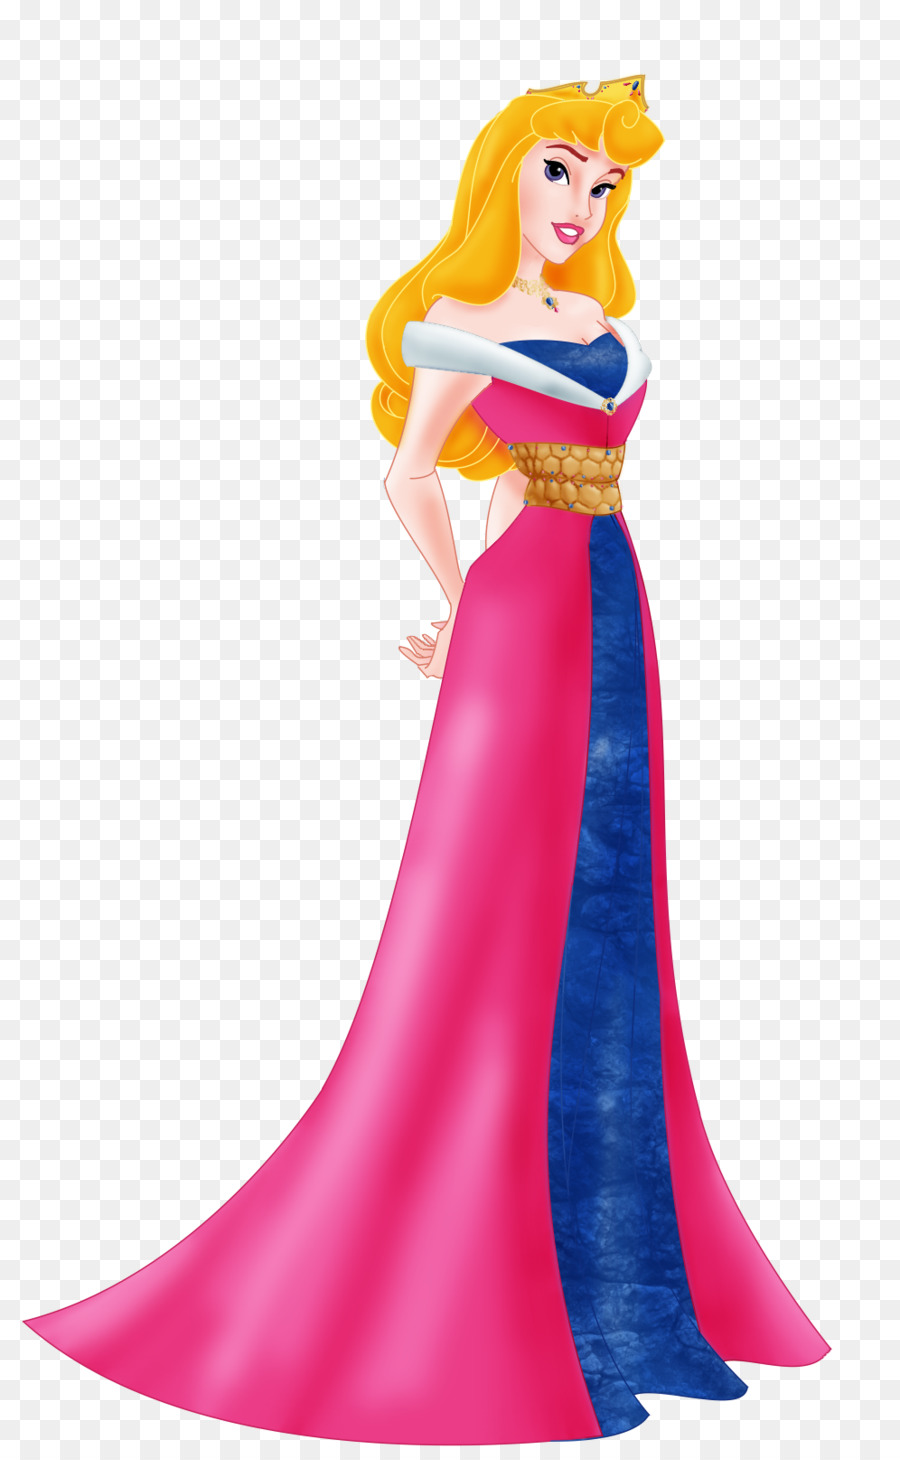 900x1460 Princess Aurora Belle Cinderella Middle Ages Disney Princess